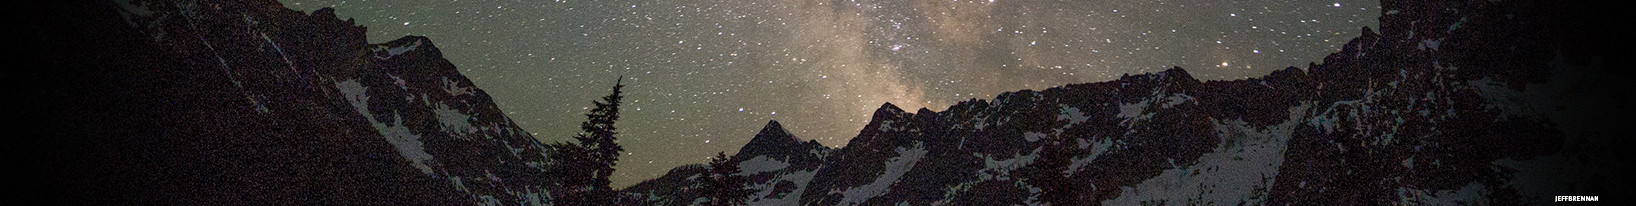 night-sky-north-cascades-brennan